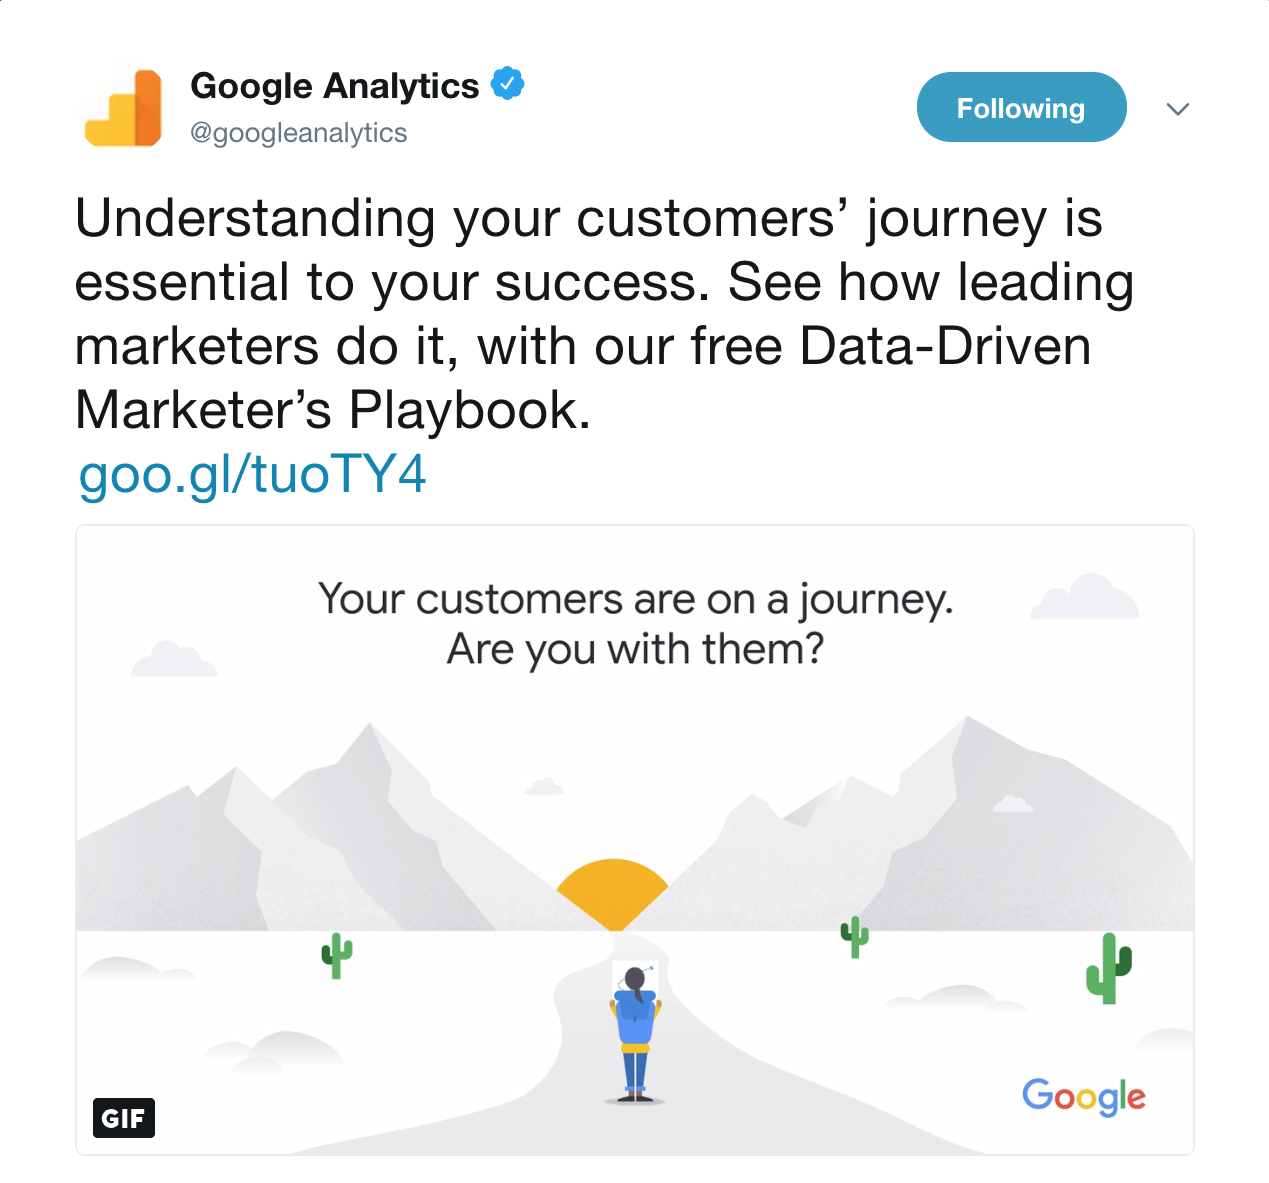 google-analytics-tweet-12.jpg